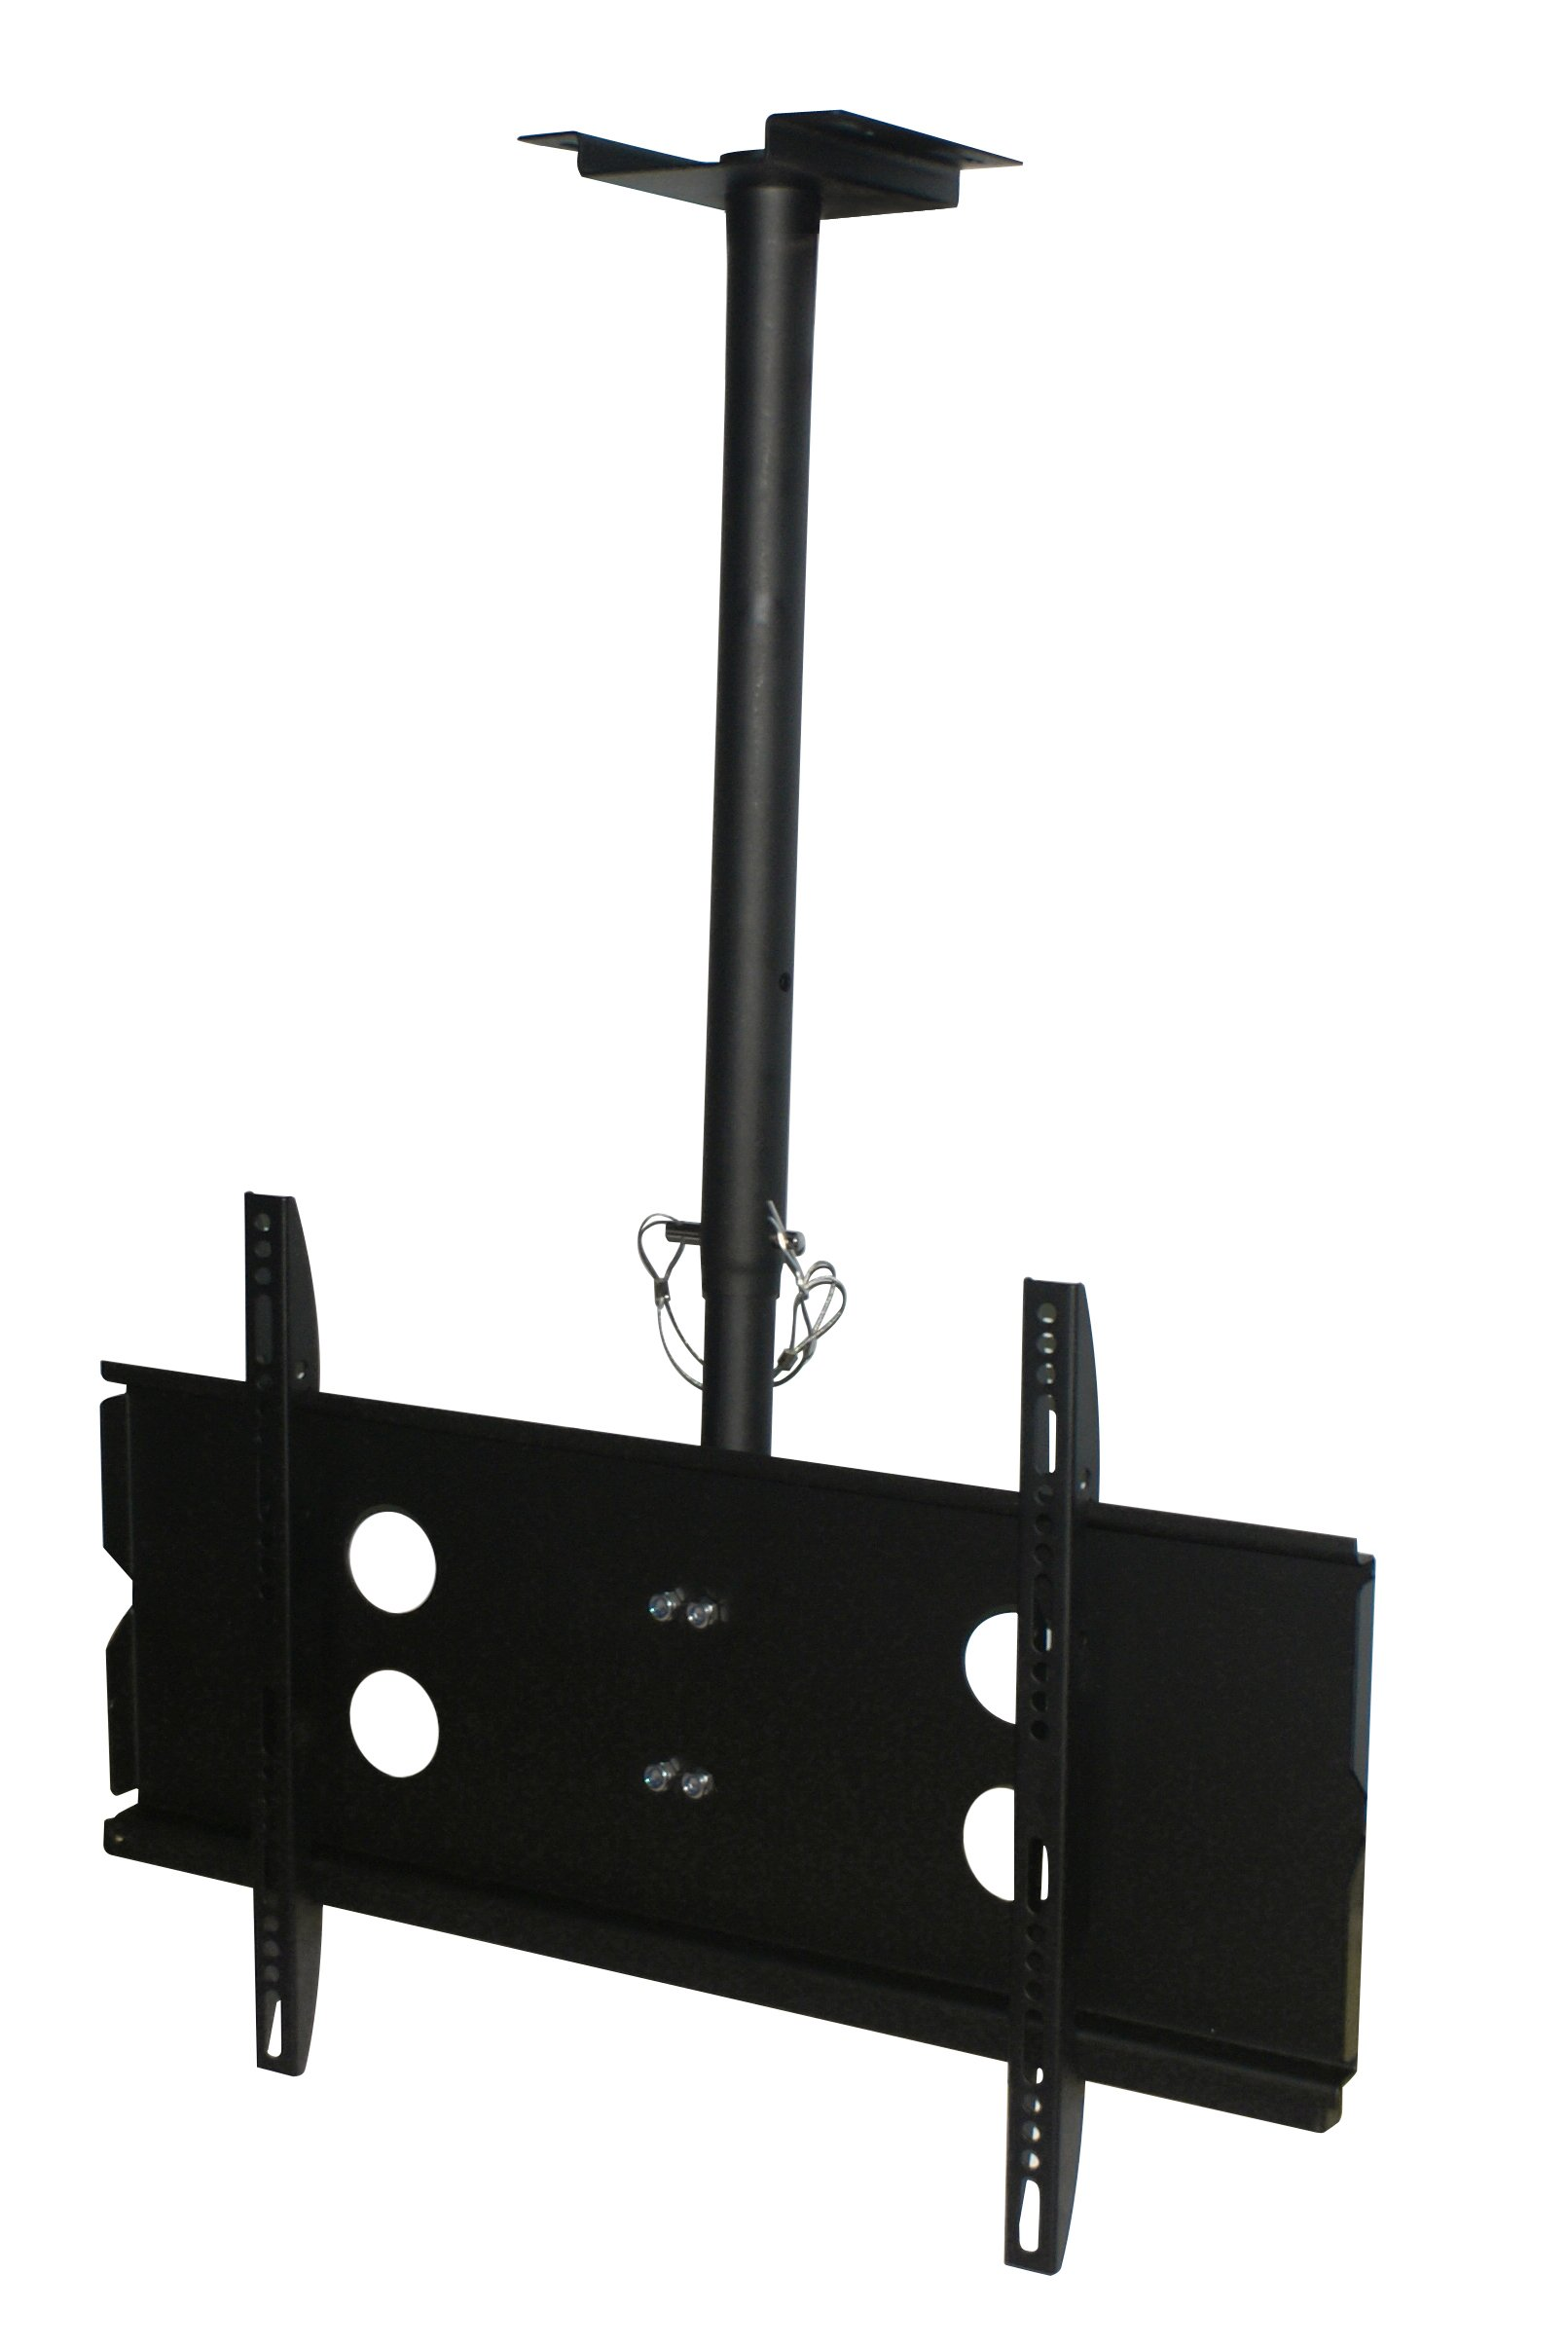 XtremPro Full Motion Ceiling TV Mount, Tilt 0 to -20° Down, 360° Swivel for Most 40''-65'' Inch LCD, LED, 4K or Plasma TVs, VESA Up to 600 X 400, 165lbs Capacity Max- Black (41029) by XtremPro